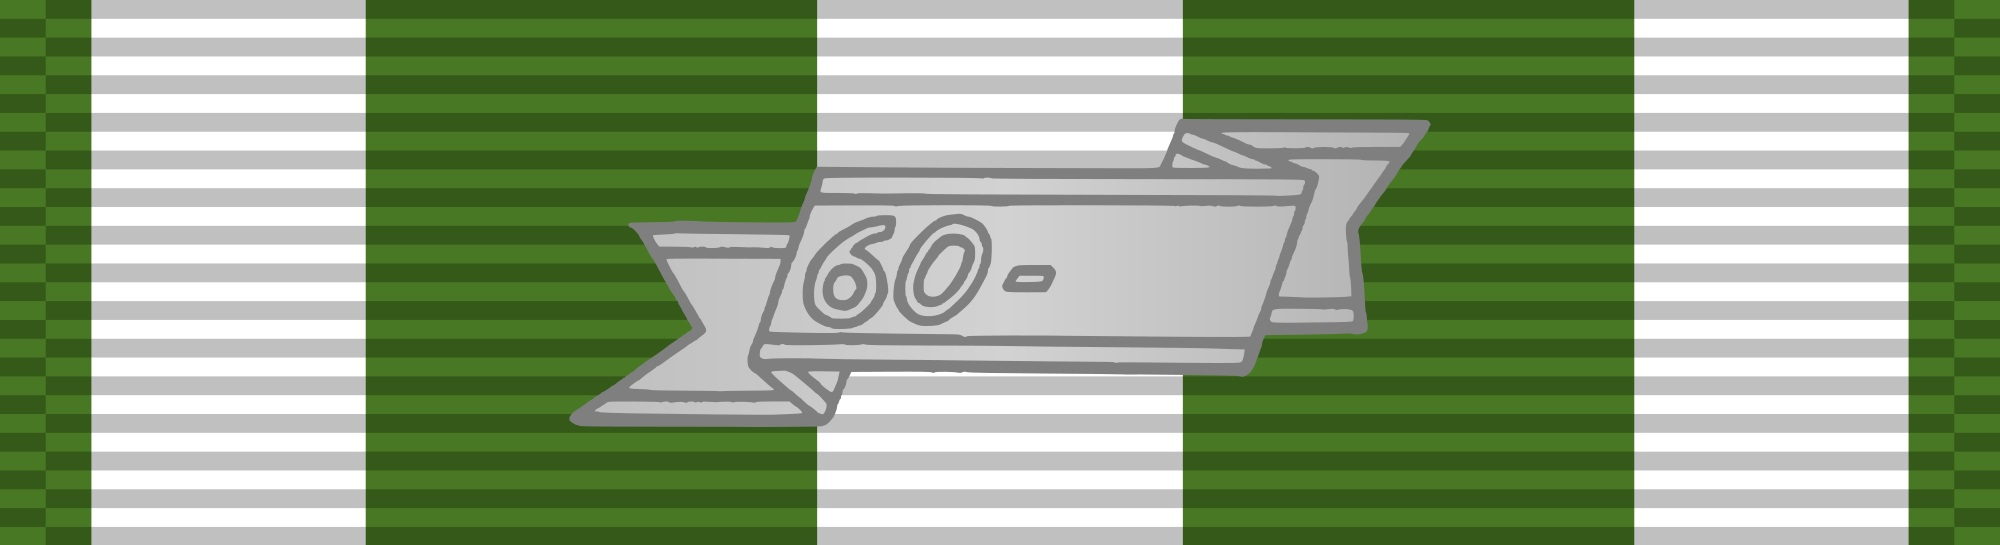 File:Vietnam Campaign Medal ribbon with 60- clasp jpg - Wikimedia